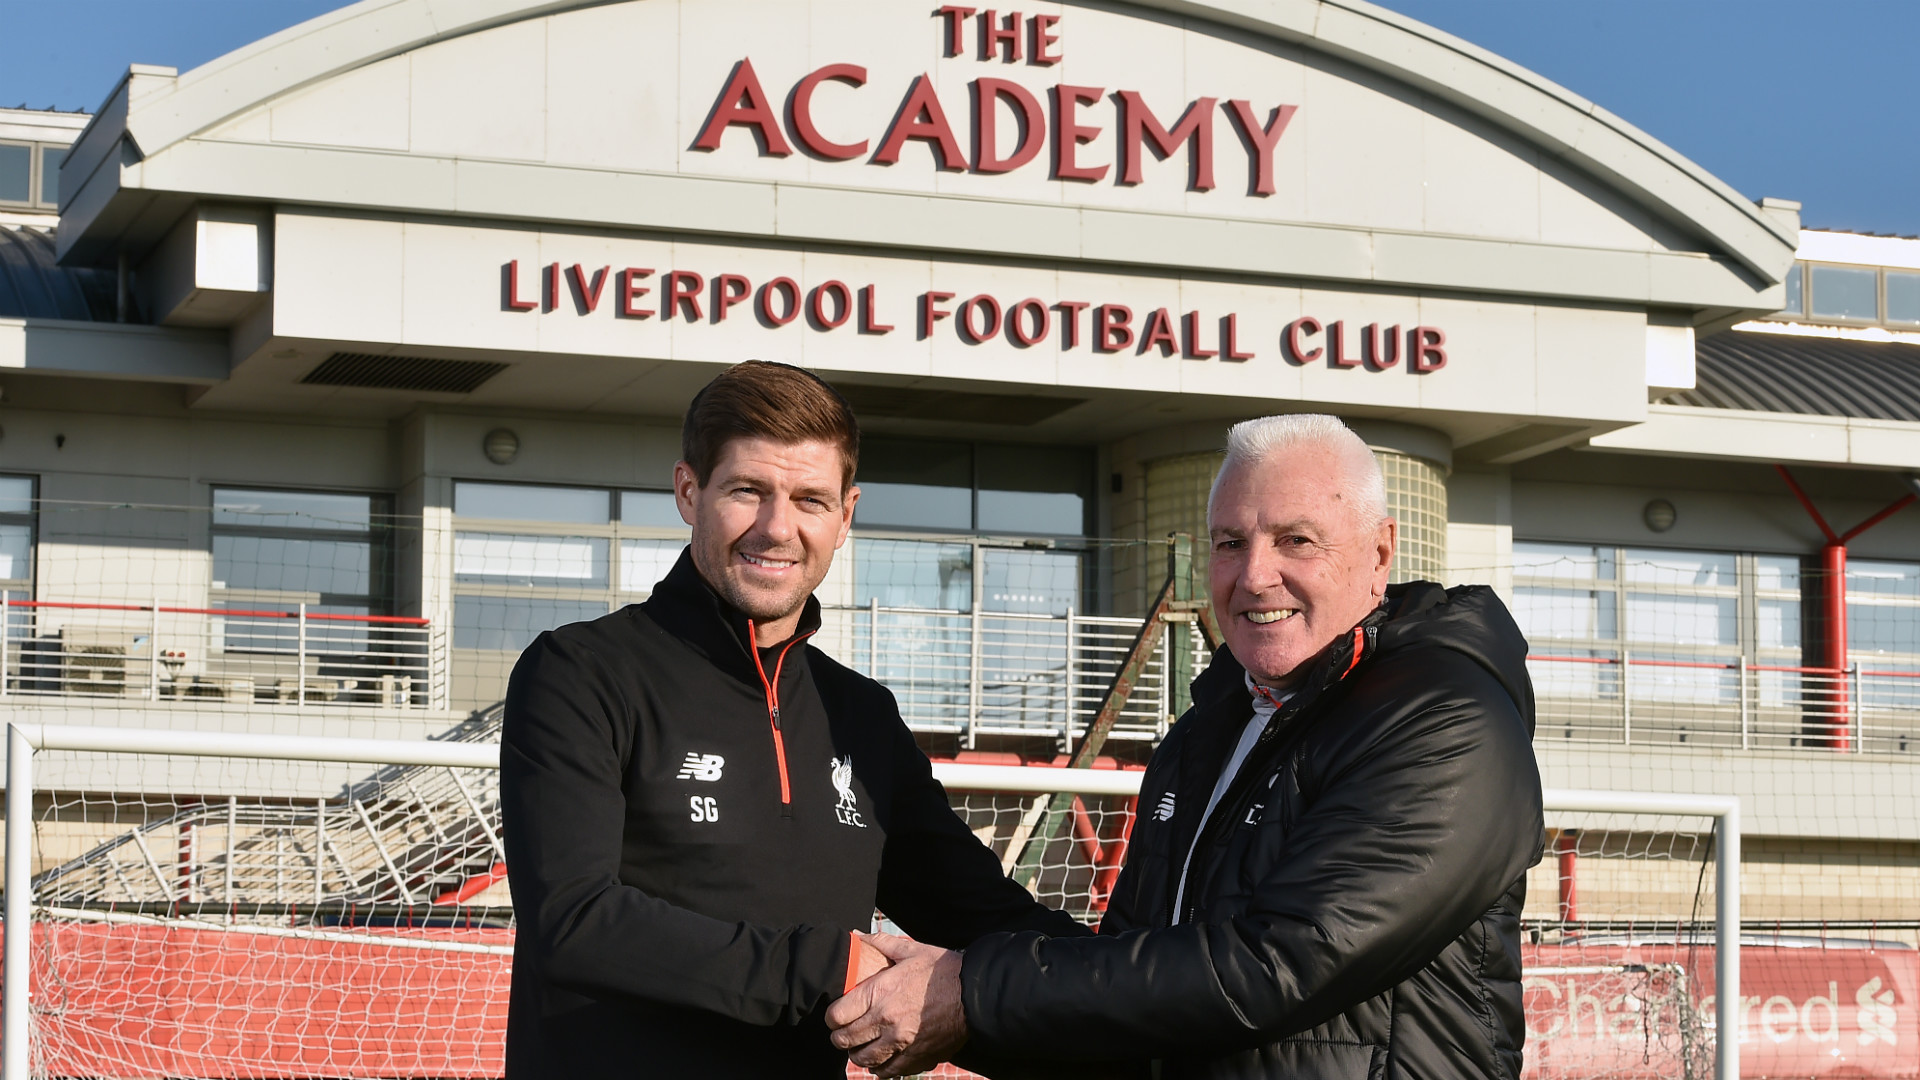 HD Steven Gerrard Steve Heighway